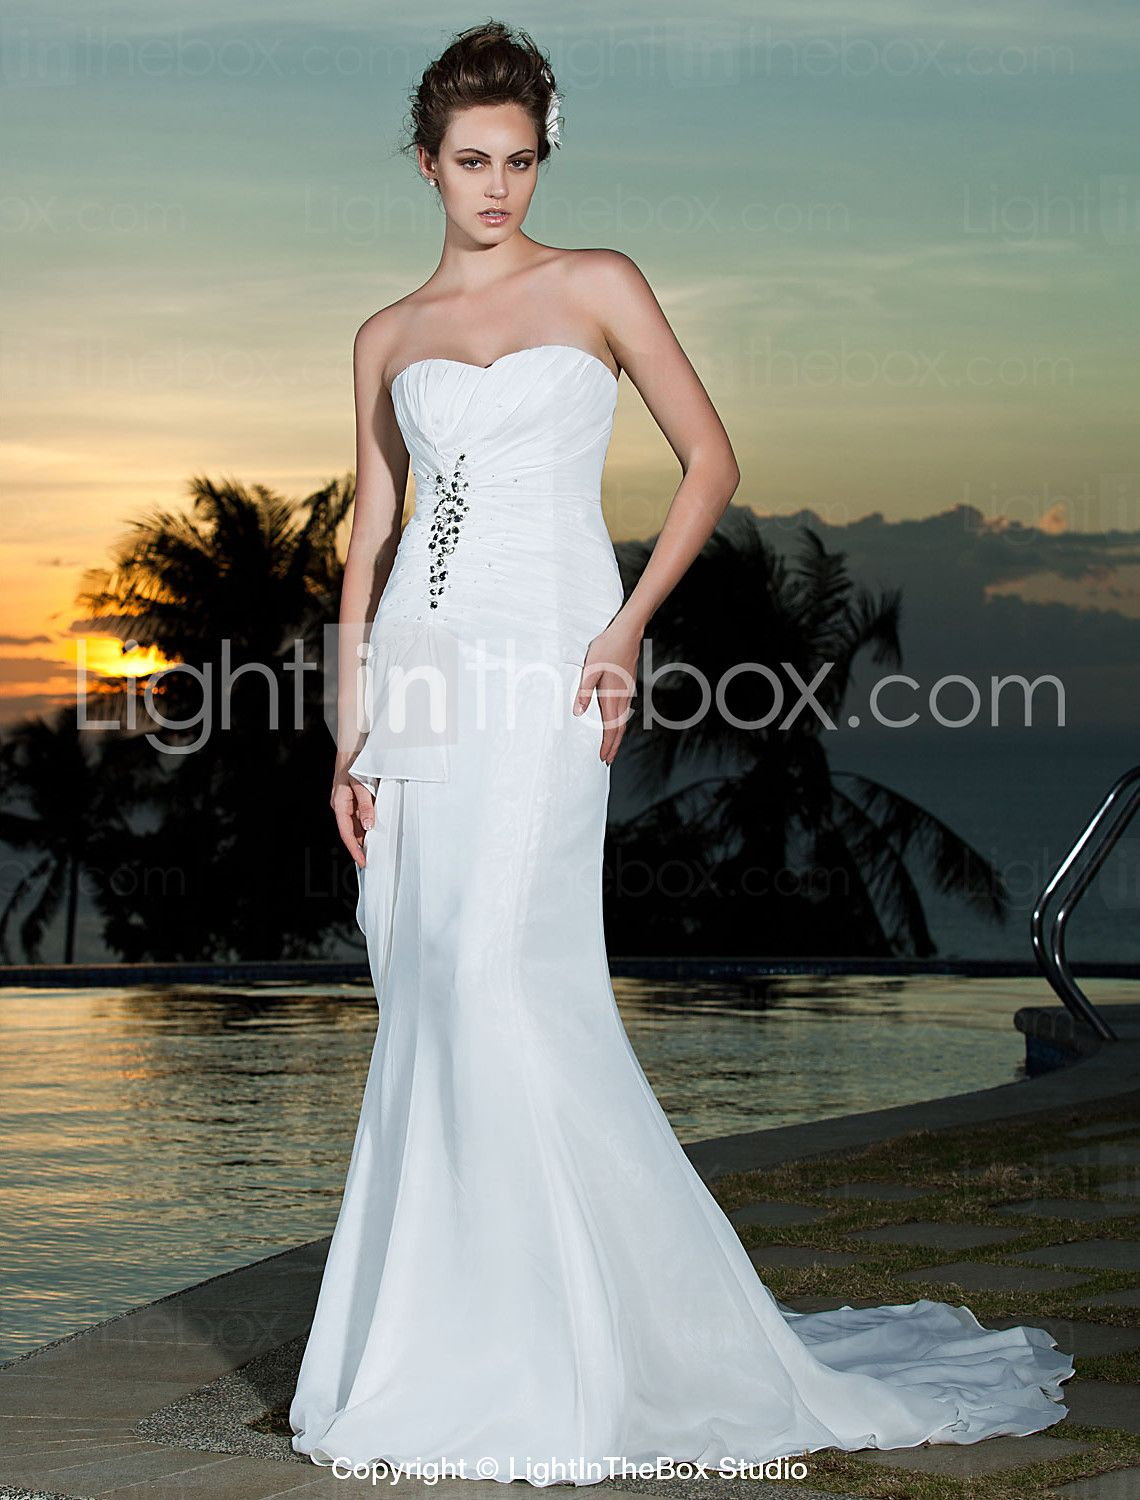 Chiffon wedding dresses  SheathColumn Strapless Sweetheart Court Train Chiffon Wedding Dress